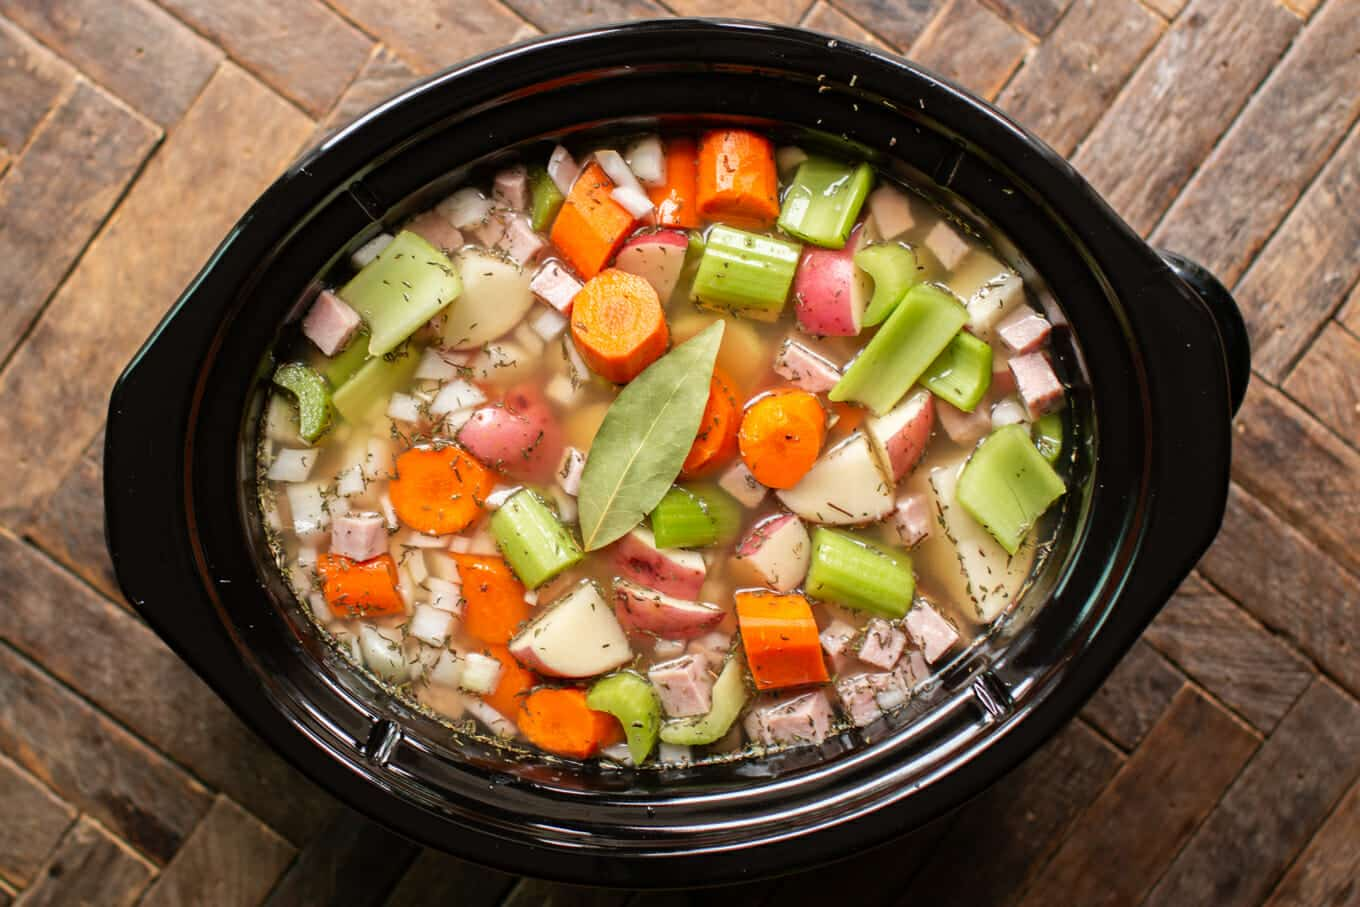 uncooked split pea stew in a slow cooker.